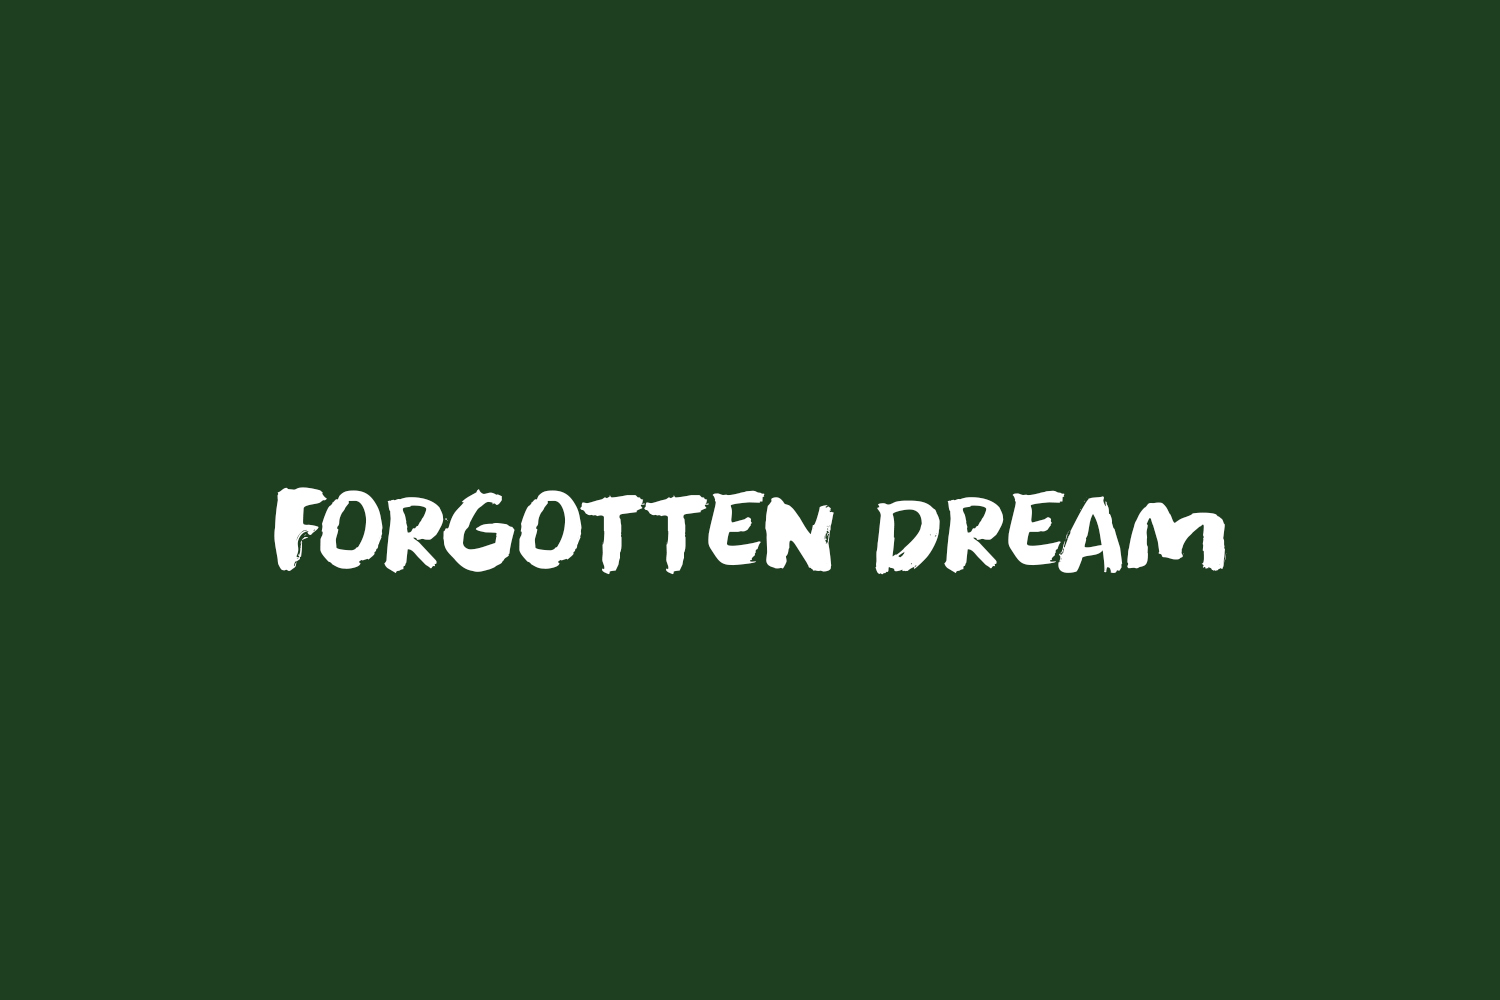 Forgotten Dream Free Font